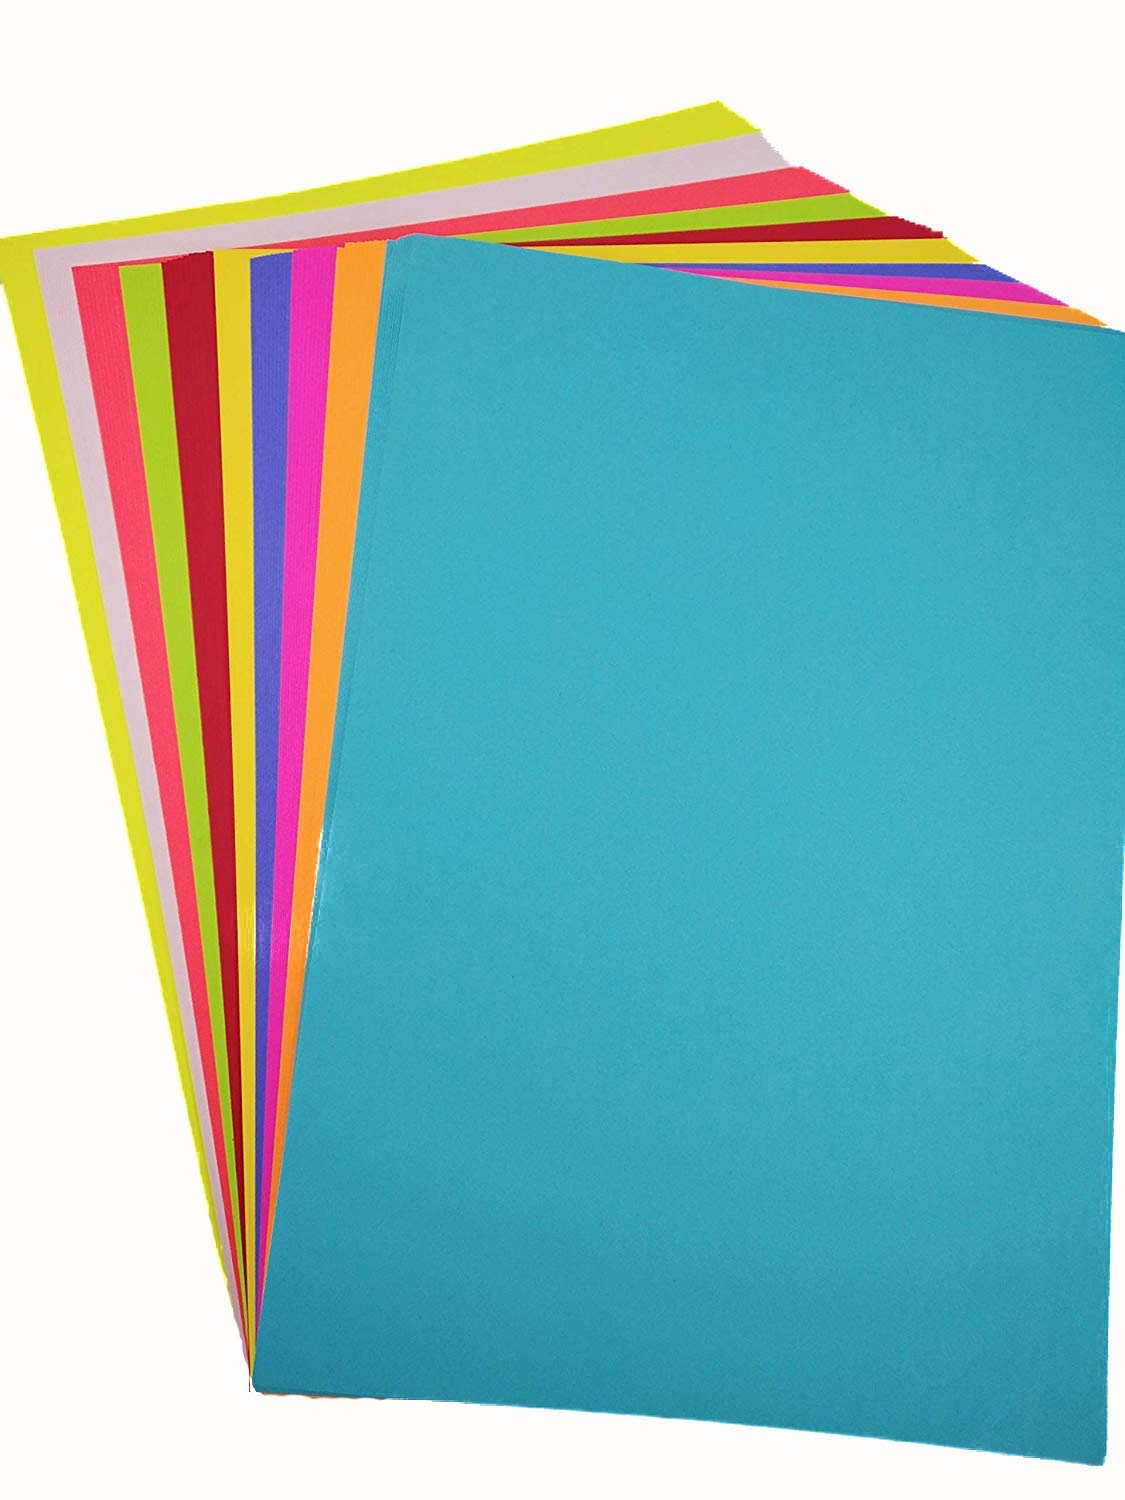 A4 Fluorescent Craft Paper 32 Pages Assorted Fluorescent Colours Art/&Craft Paper